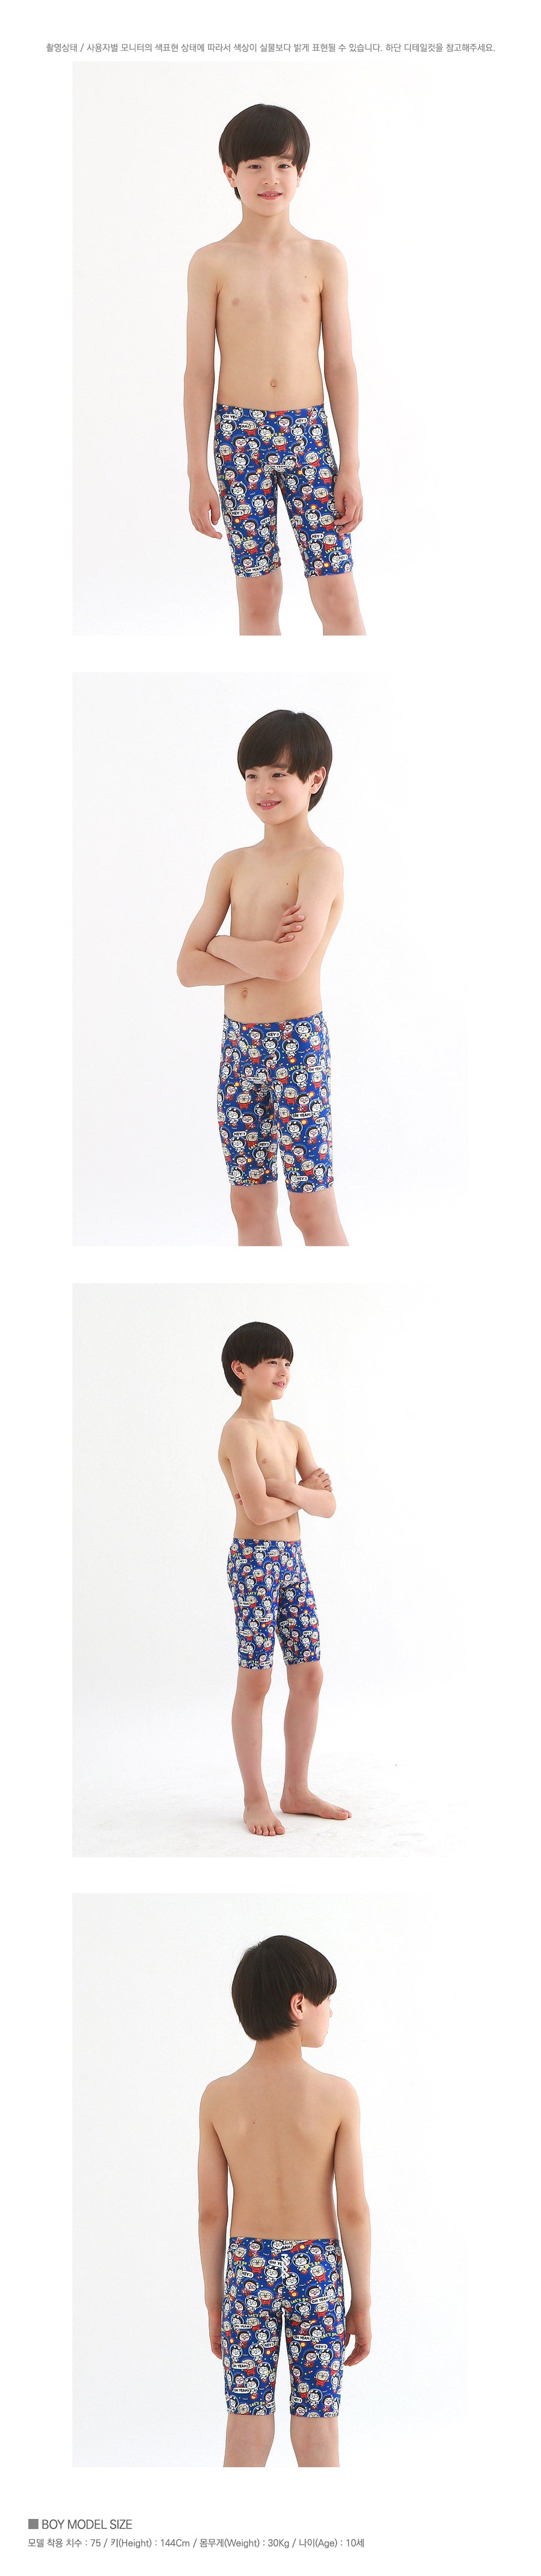 Let them hit the beach or the pool in style with boys' swimwear at great low prices. Find savings on all our swim shorts, Tiun shorts, and wetsuits for boys at Tiun